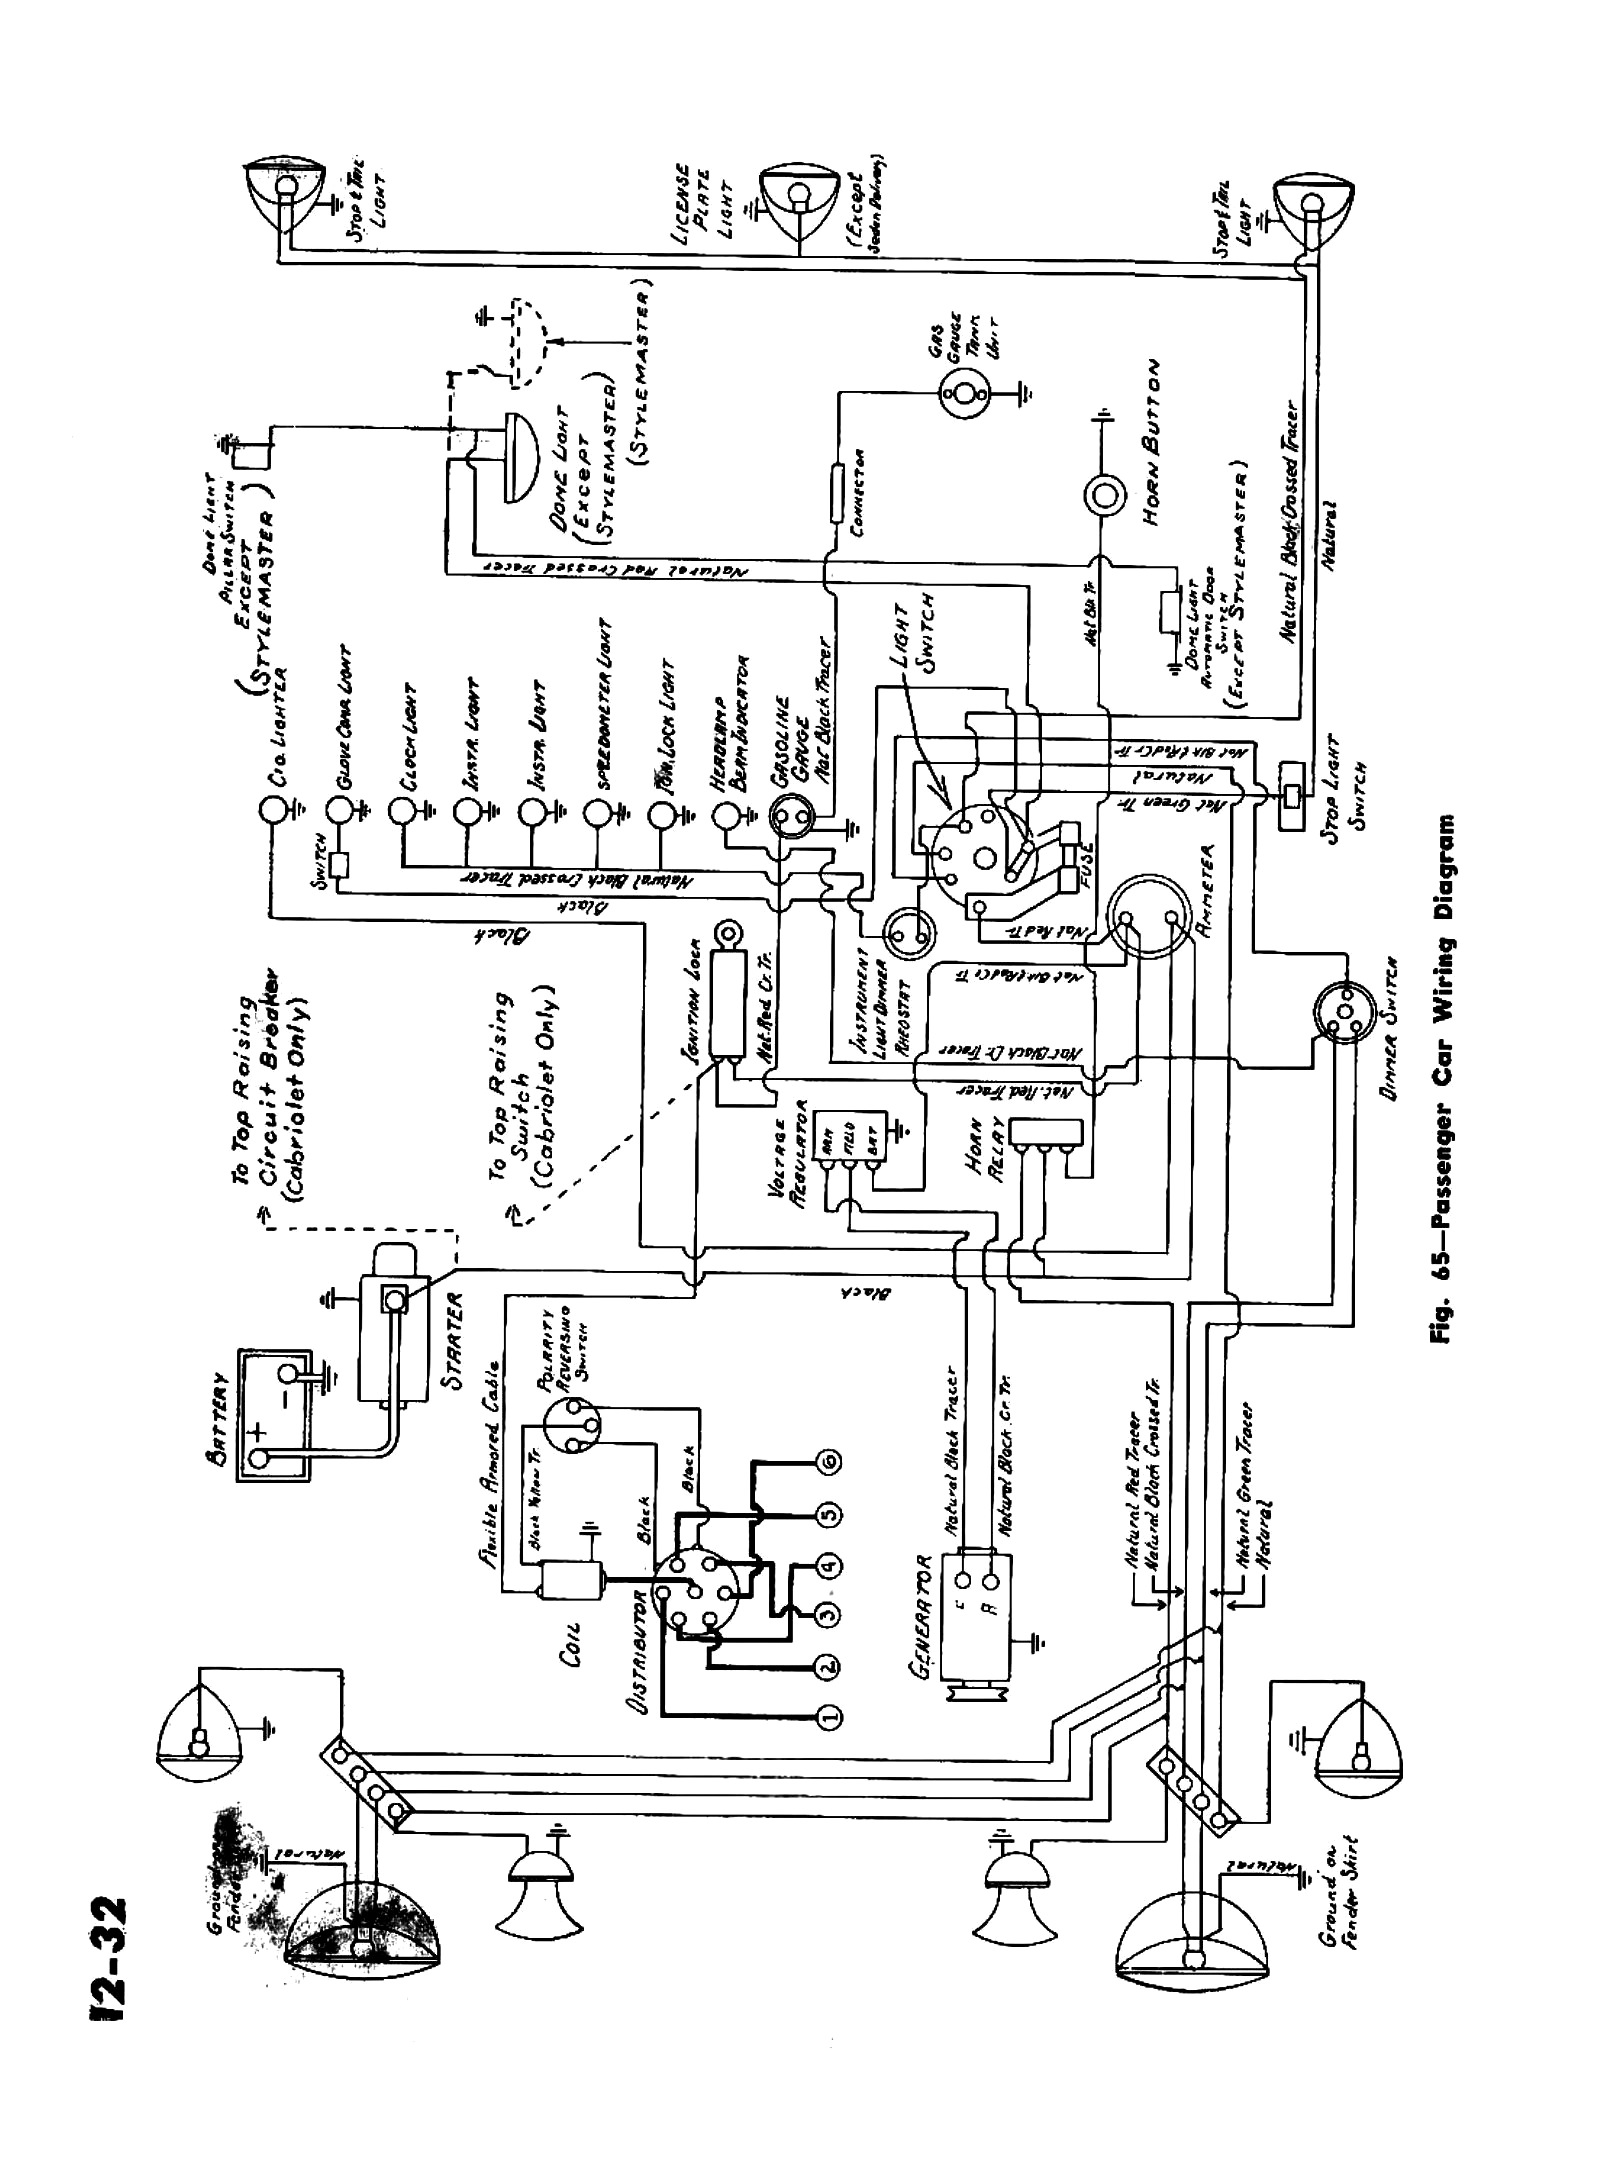 wiring diagram further chevy impala wiring diagram on oil pressure